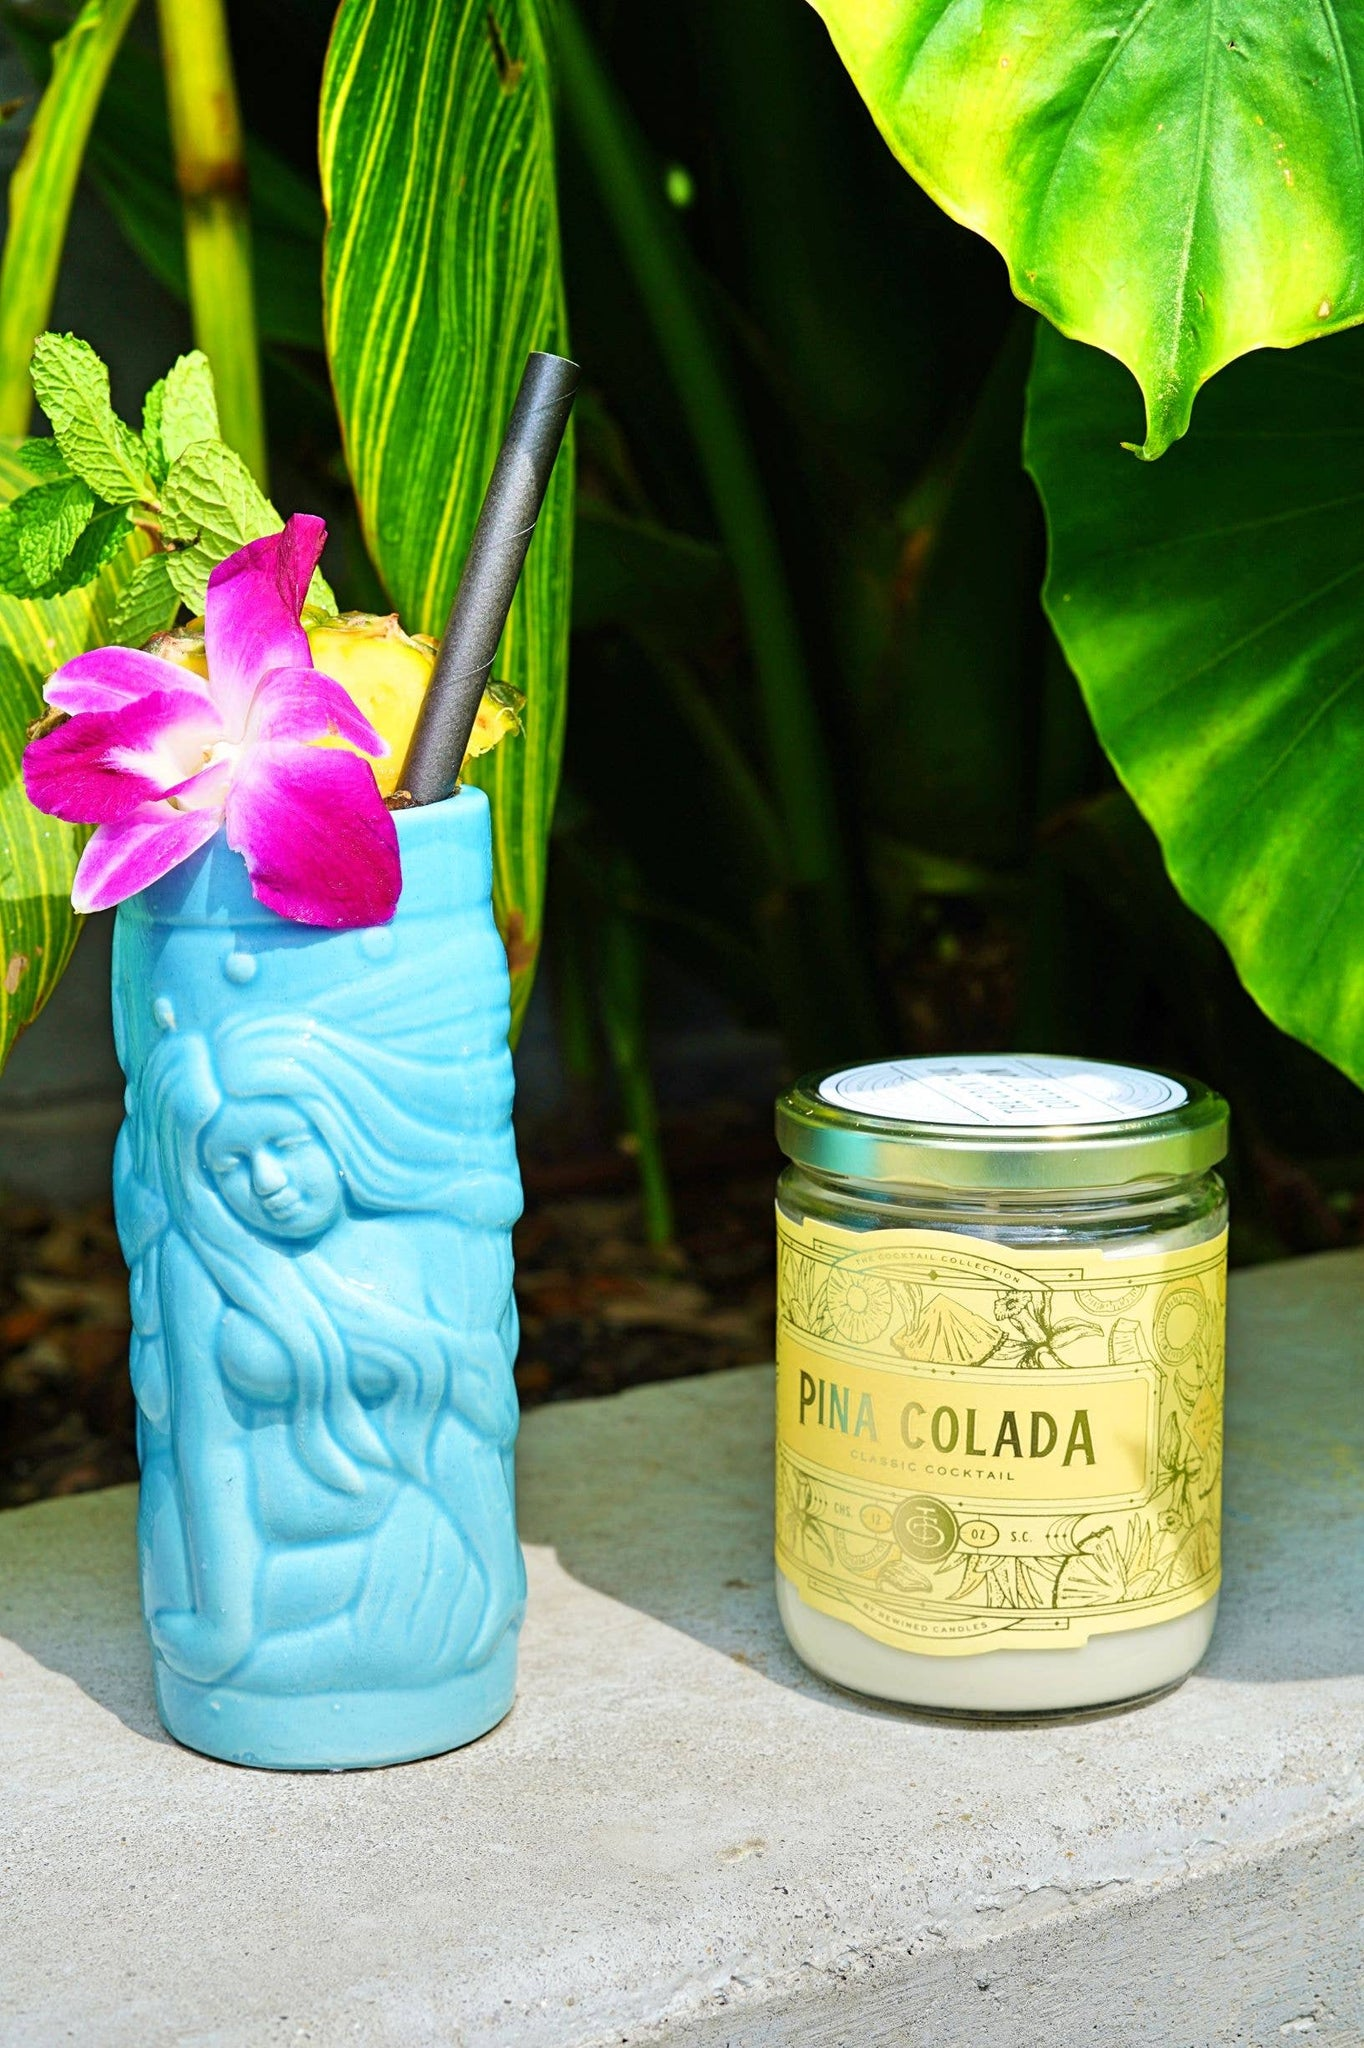 Pina Colada Candle (12 oz) - Owl Cove